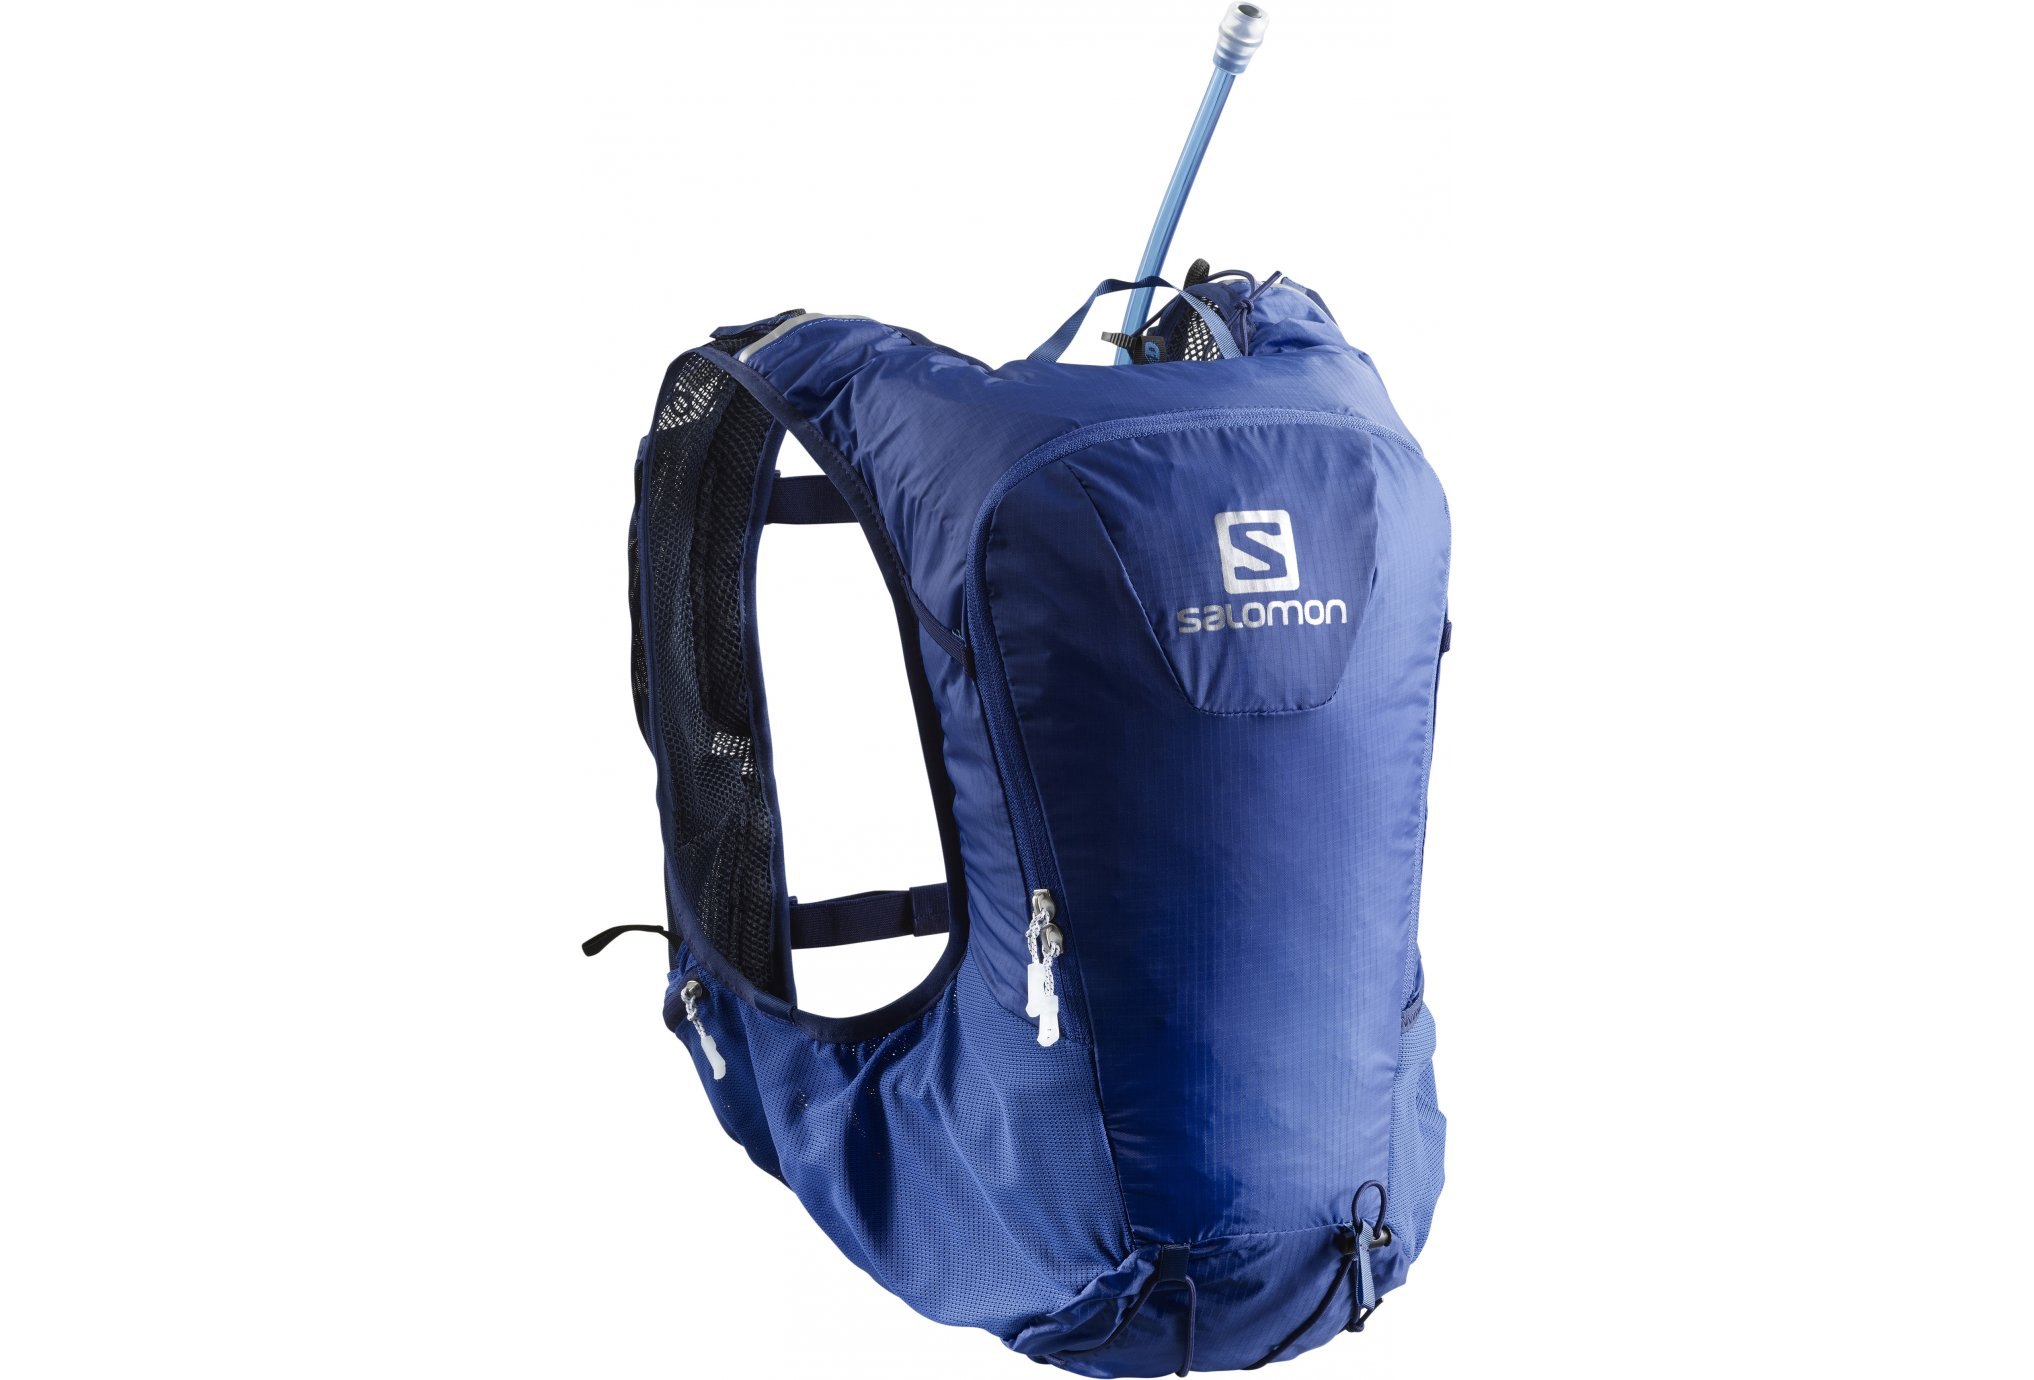 42d48209fd Salomon Skin Pro 10 Set Sac hydratation / Gourde